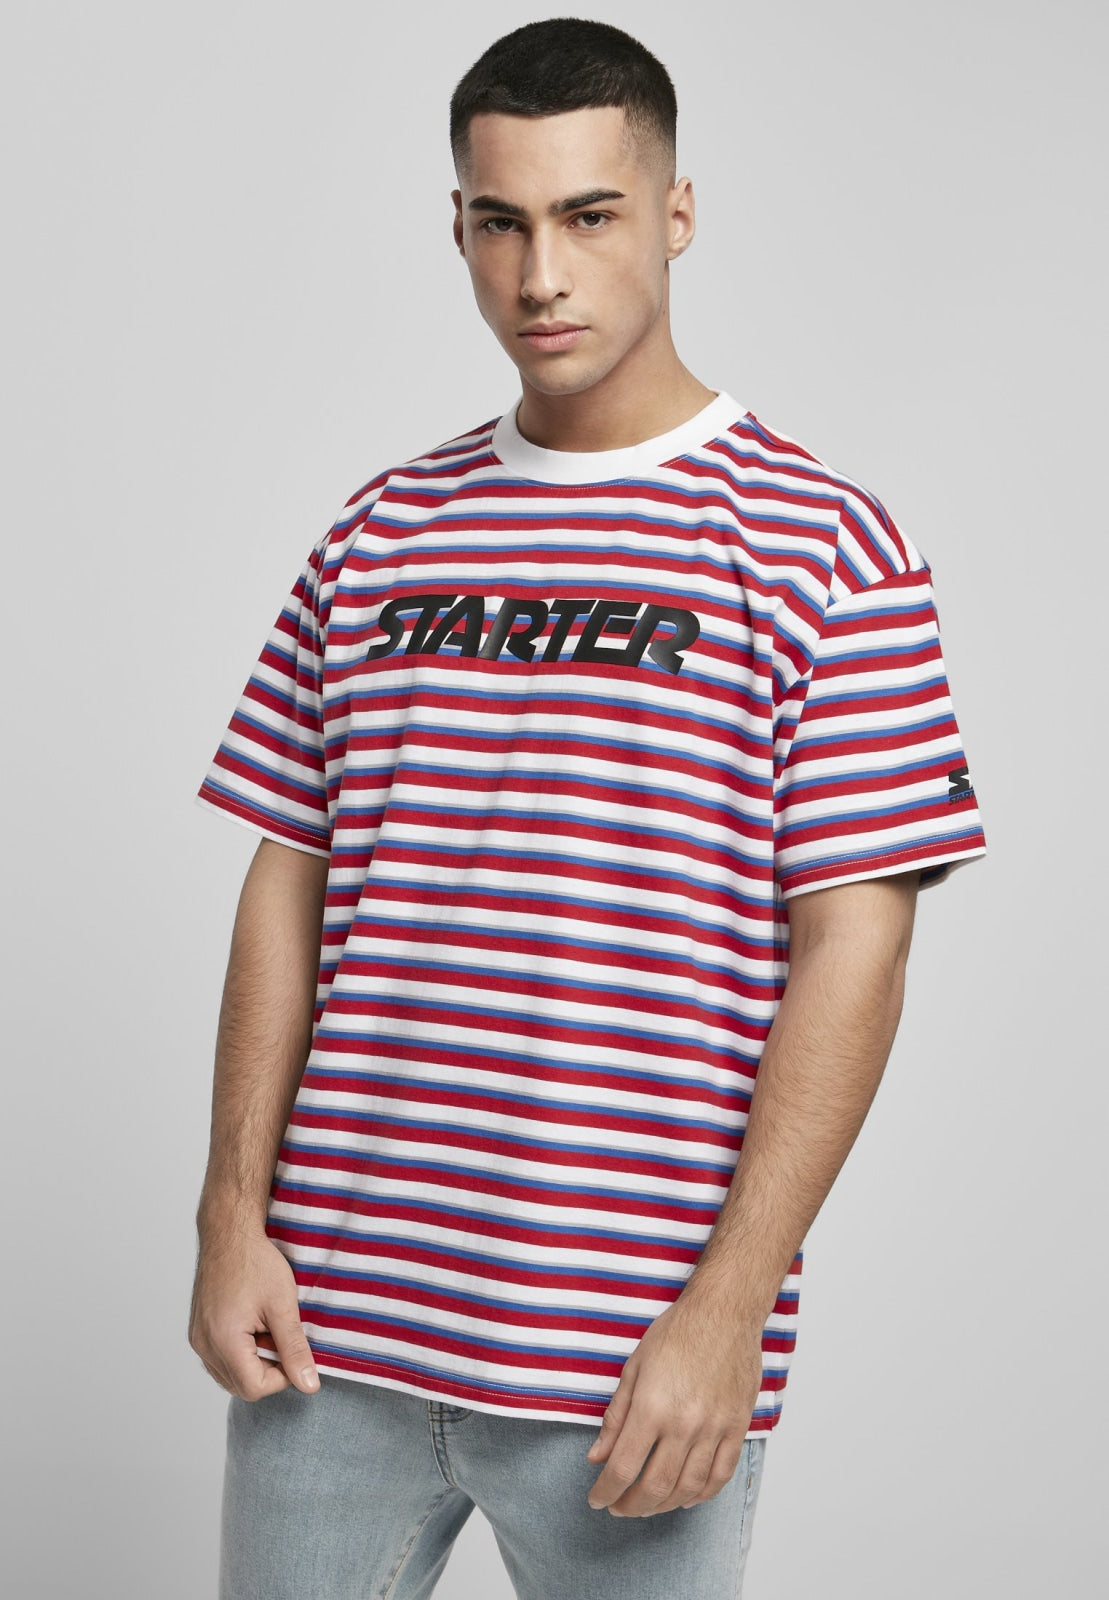 Starter Stripe Jersey City Red/white/sporty Blue/silver Grey / s T-shirt Starter